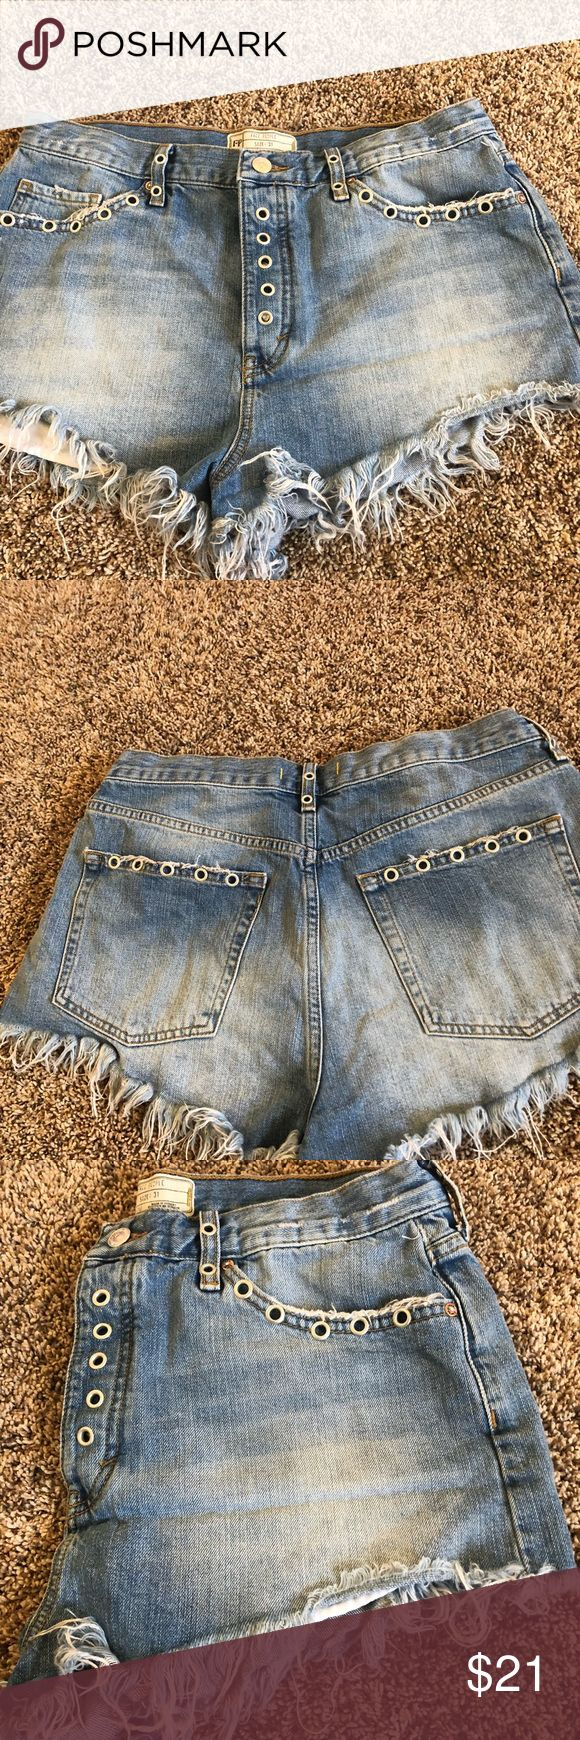 Adorable free people daisy dukes Free people Daisy Duke shorts size 31 super cute that I listed coming up in little bit a holes that are so darling. The material is awesome and they're super flattering the cut🌸 Free People Shorts Jean Shorts